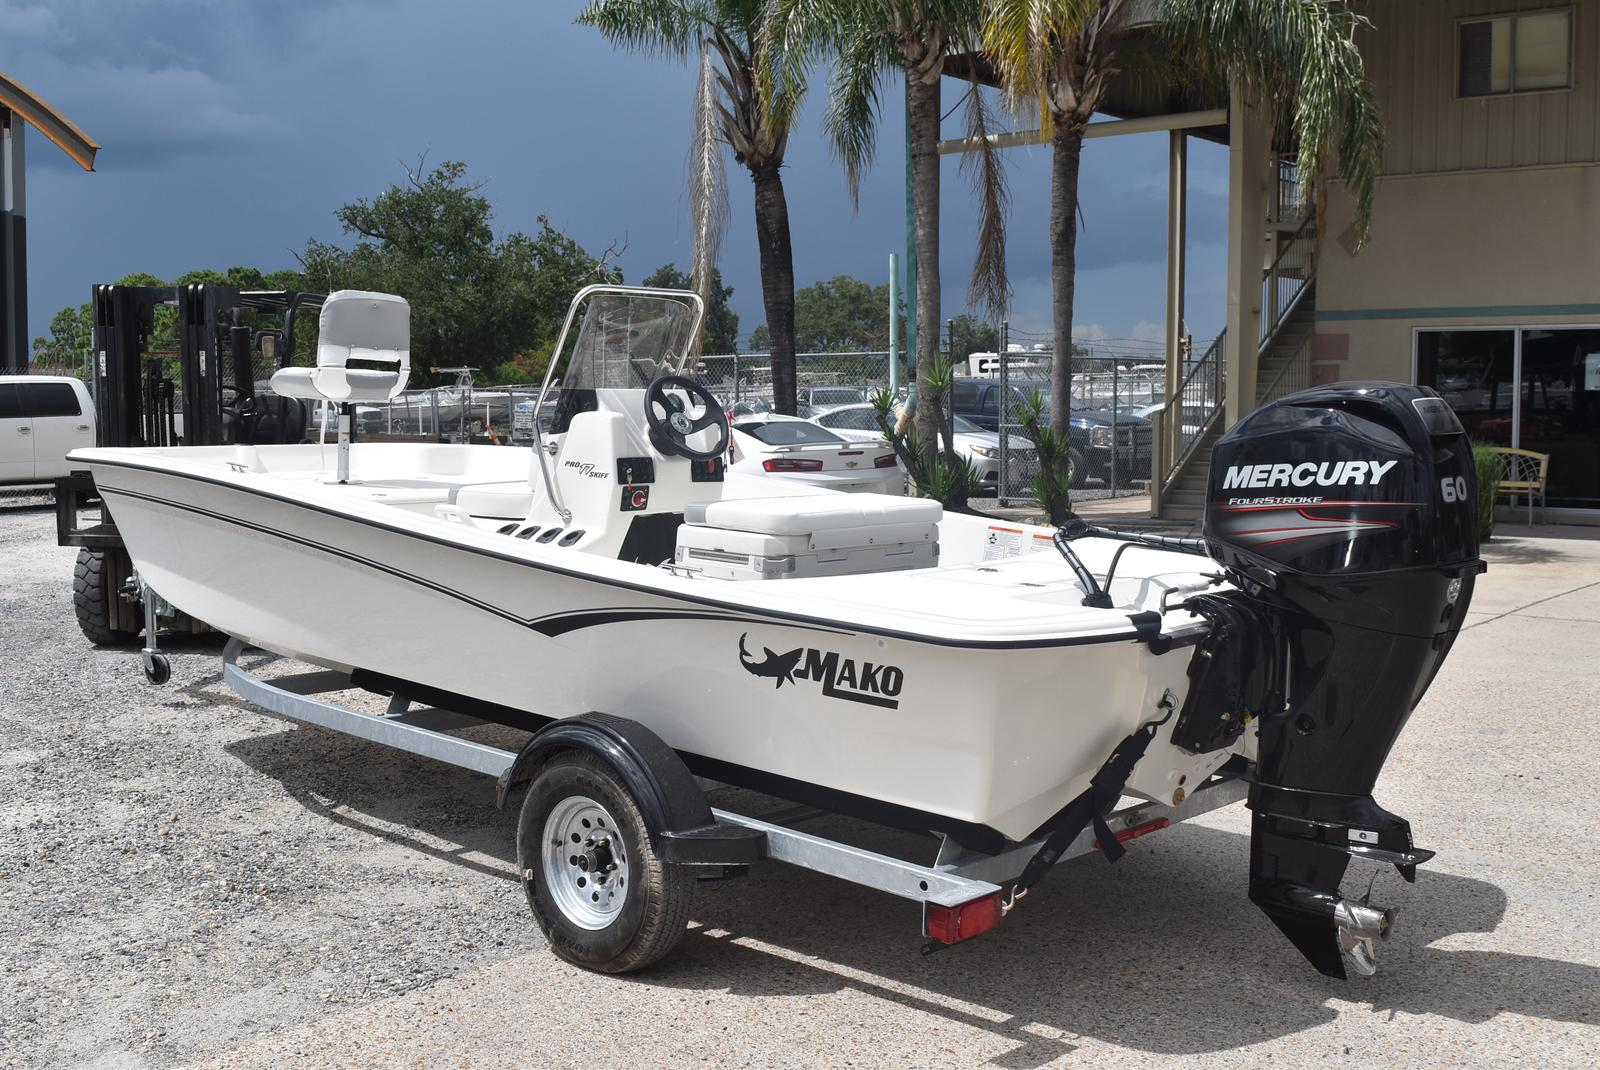 2020 Mako boat for sale, model of the boat is Pro Skiff 17, 75 ELPT & Image # 162 of 702